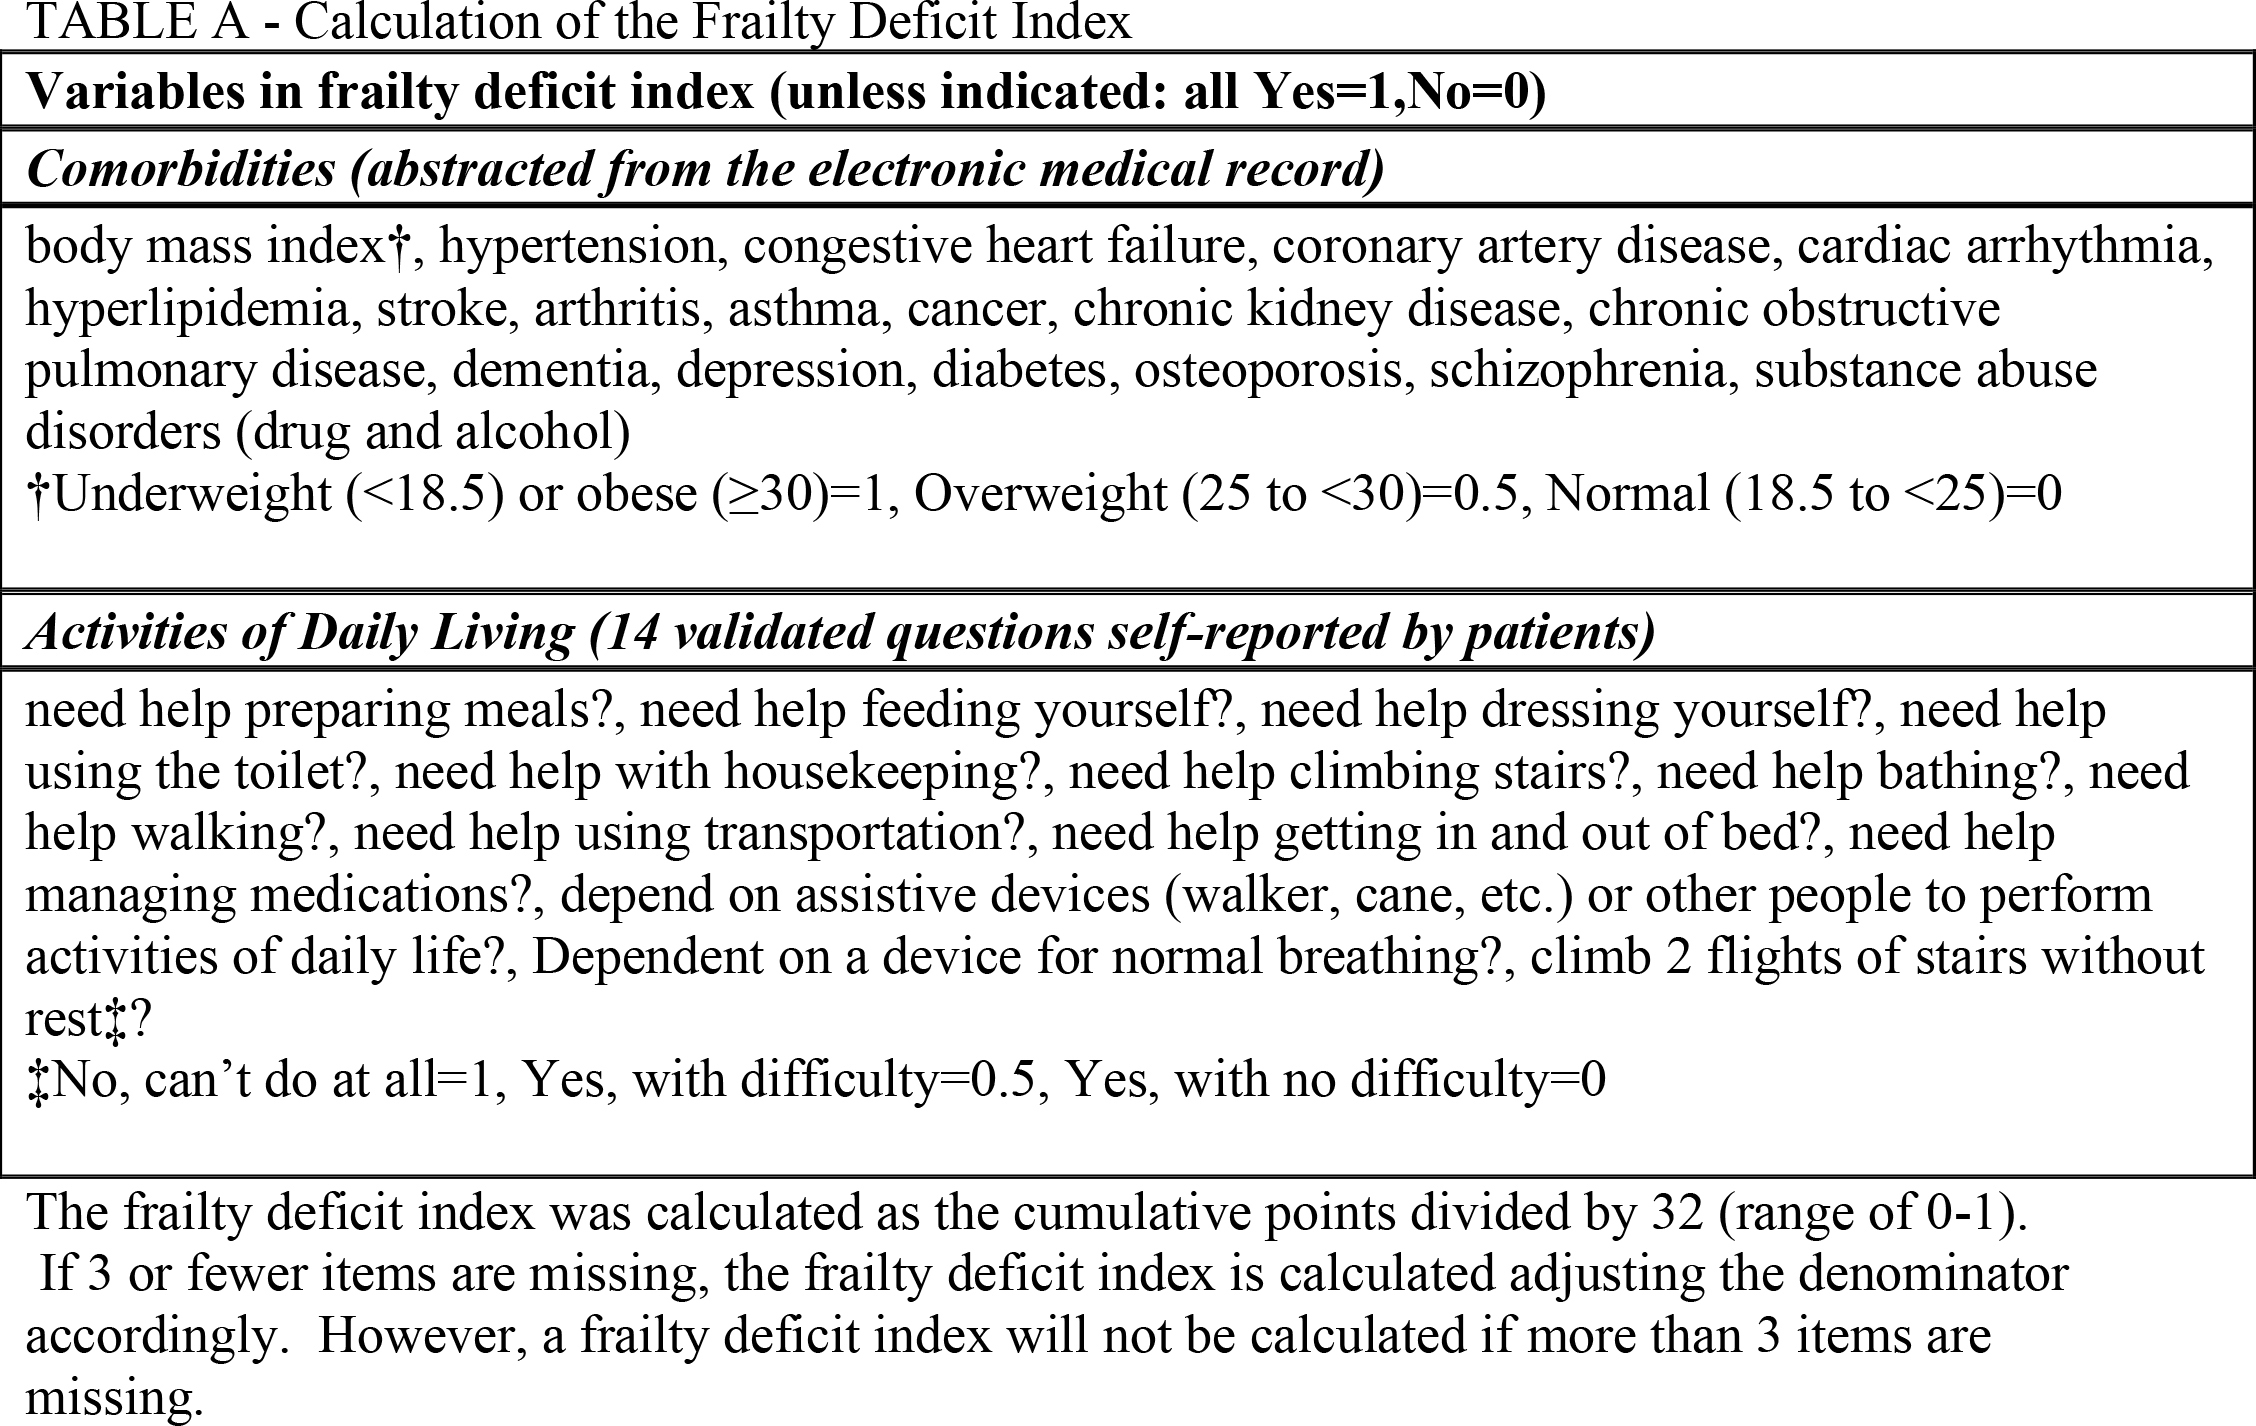 Calculation of the Frailty Deficit Index